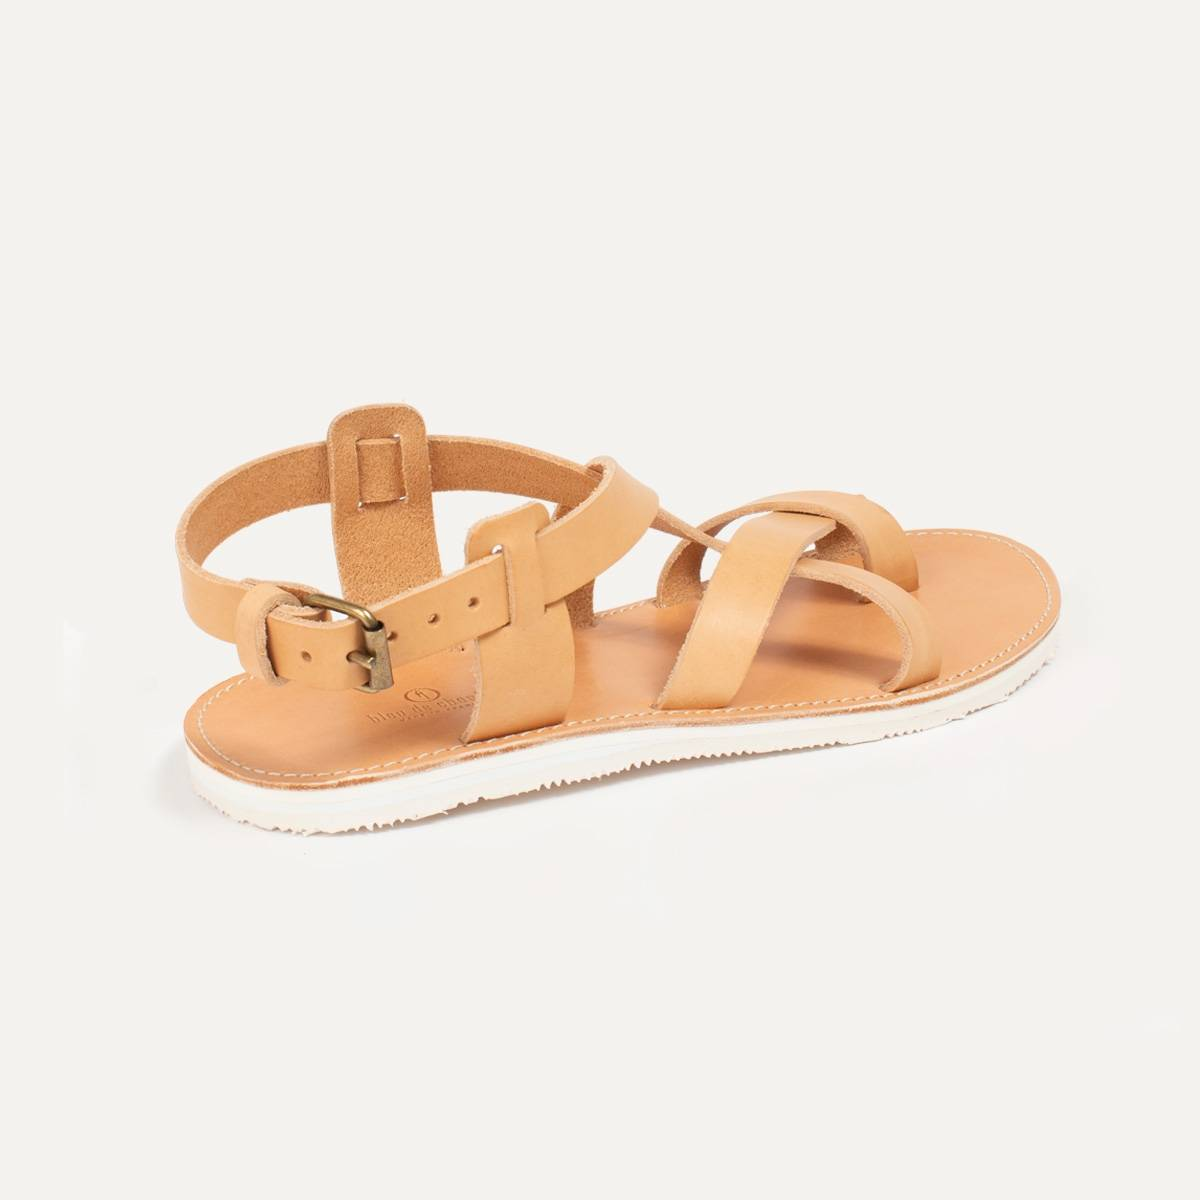 Lhassa leather sandals - Natural (image n°3)